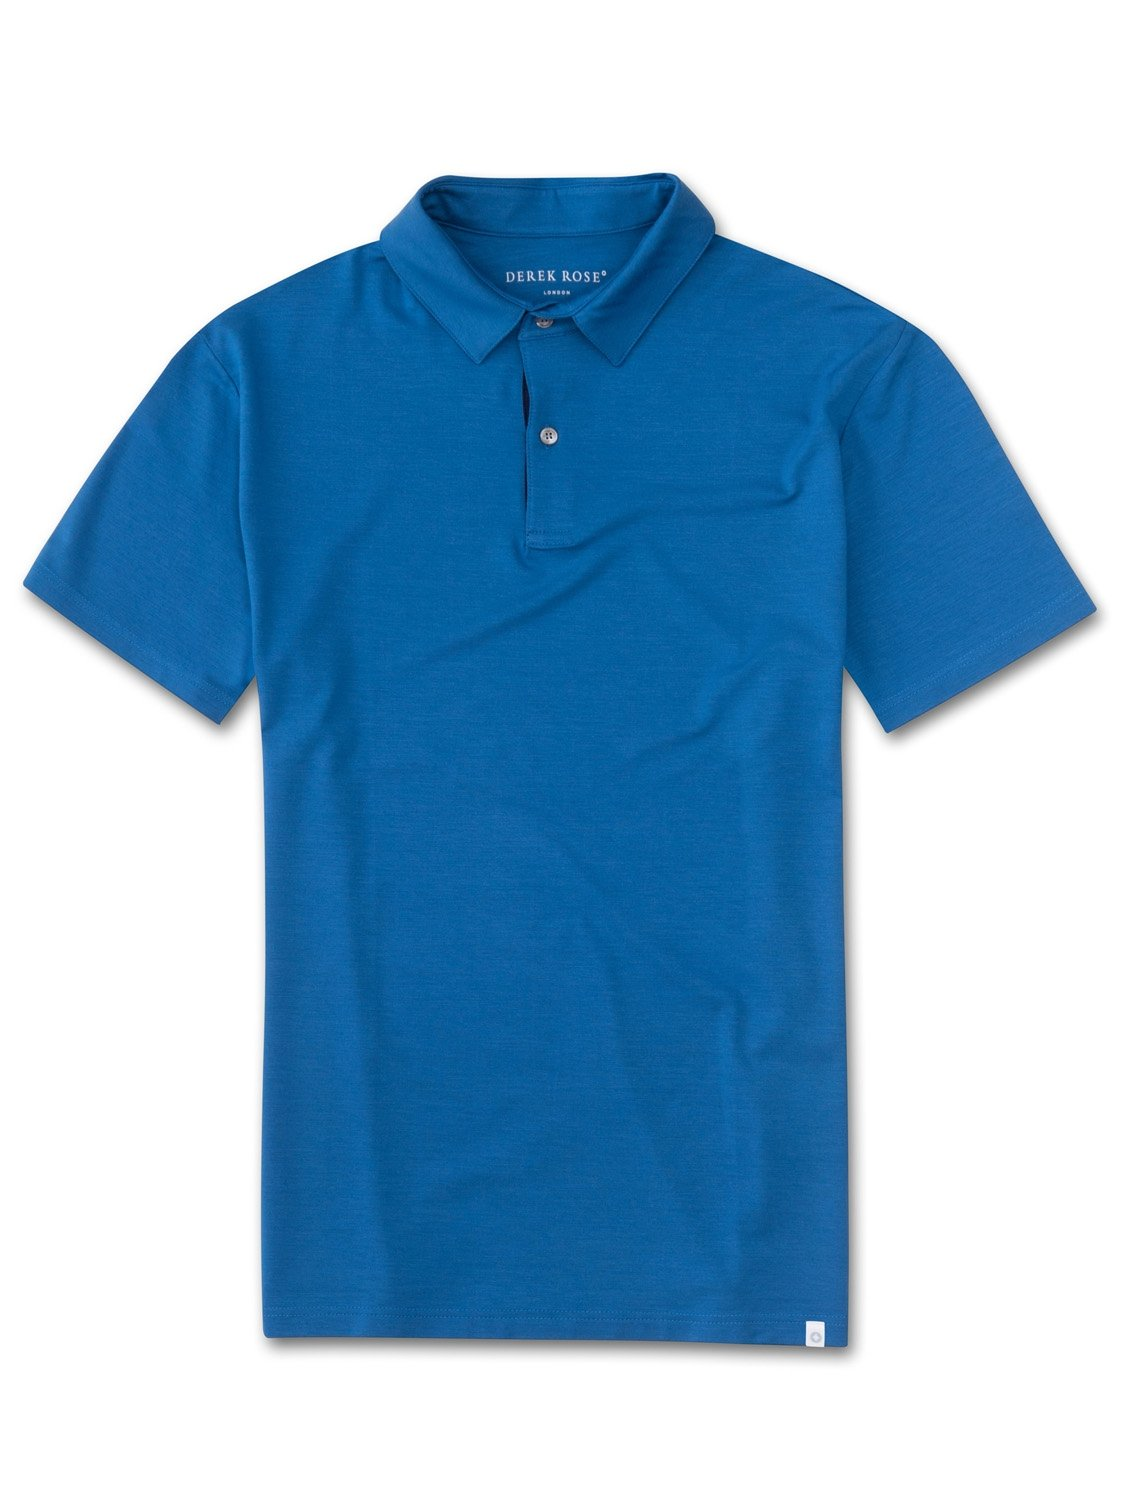 Men's Short Sleeve Polo Shirt Basel 5 Micro Modal Stretch Blue